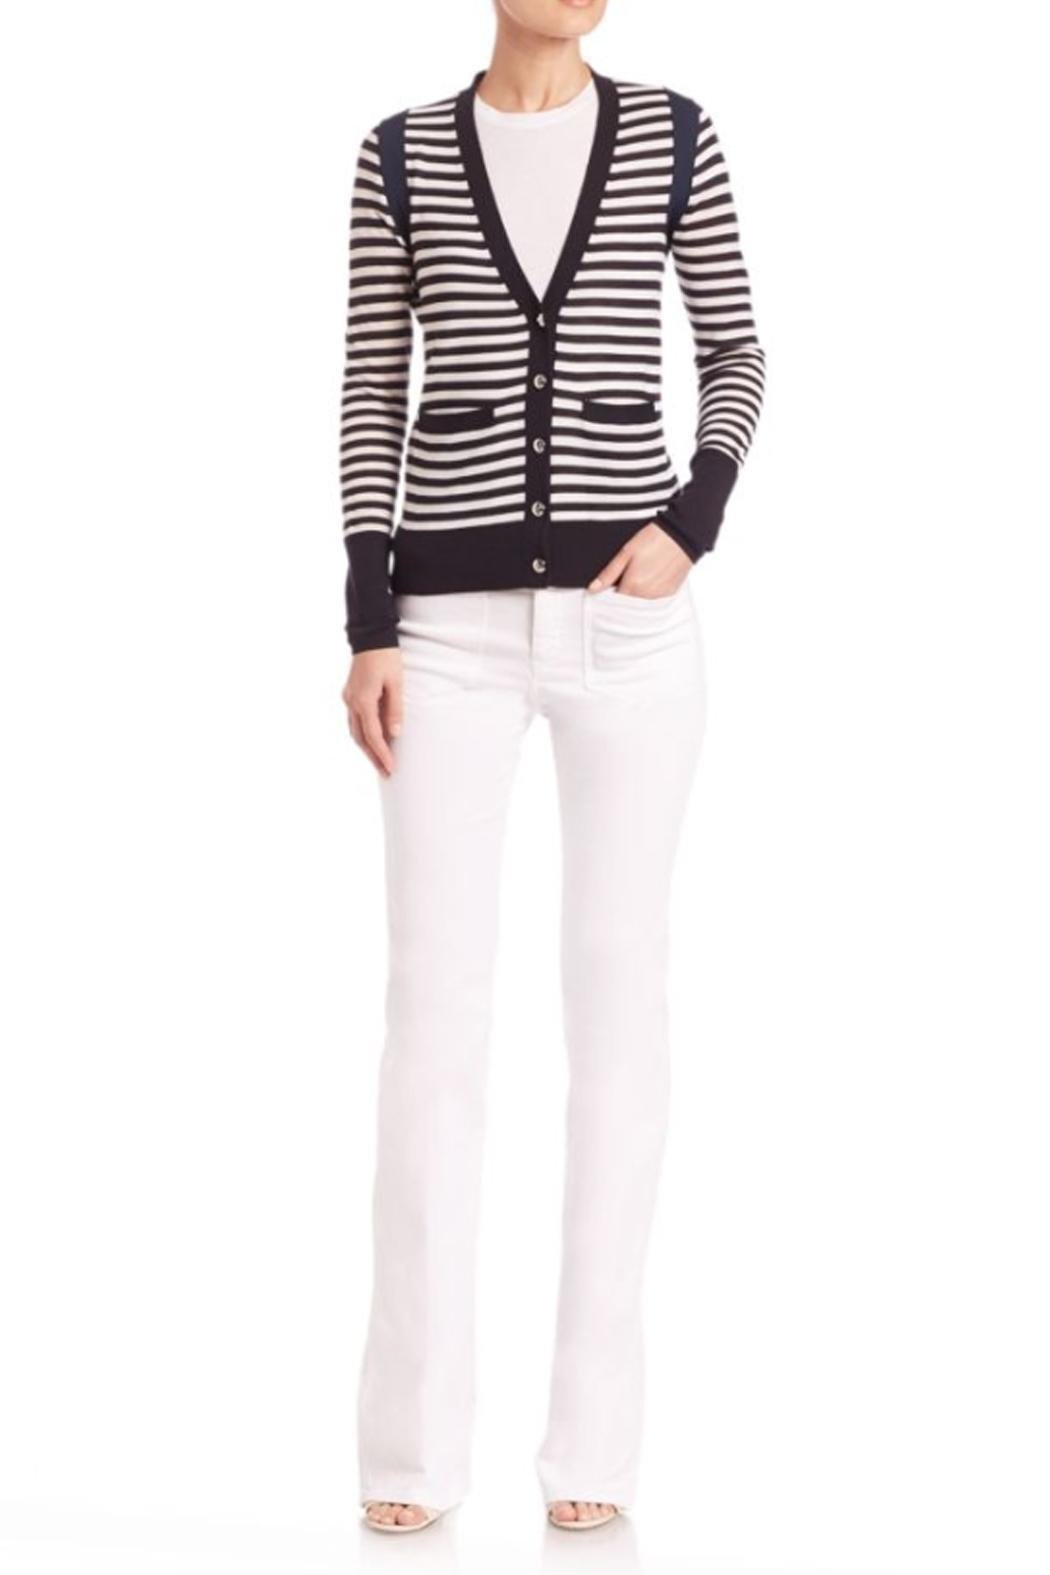 Sonia by Sonia Rykiel Striped Navy Cardigan - Front Cropped Image